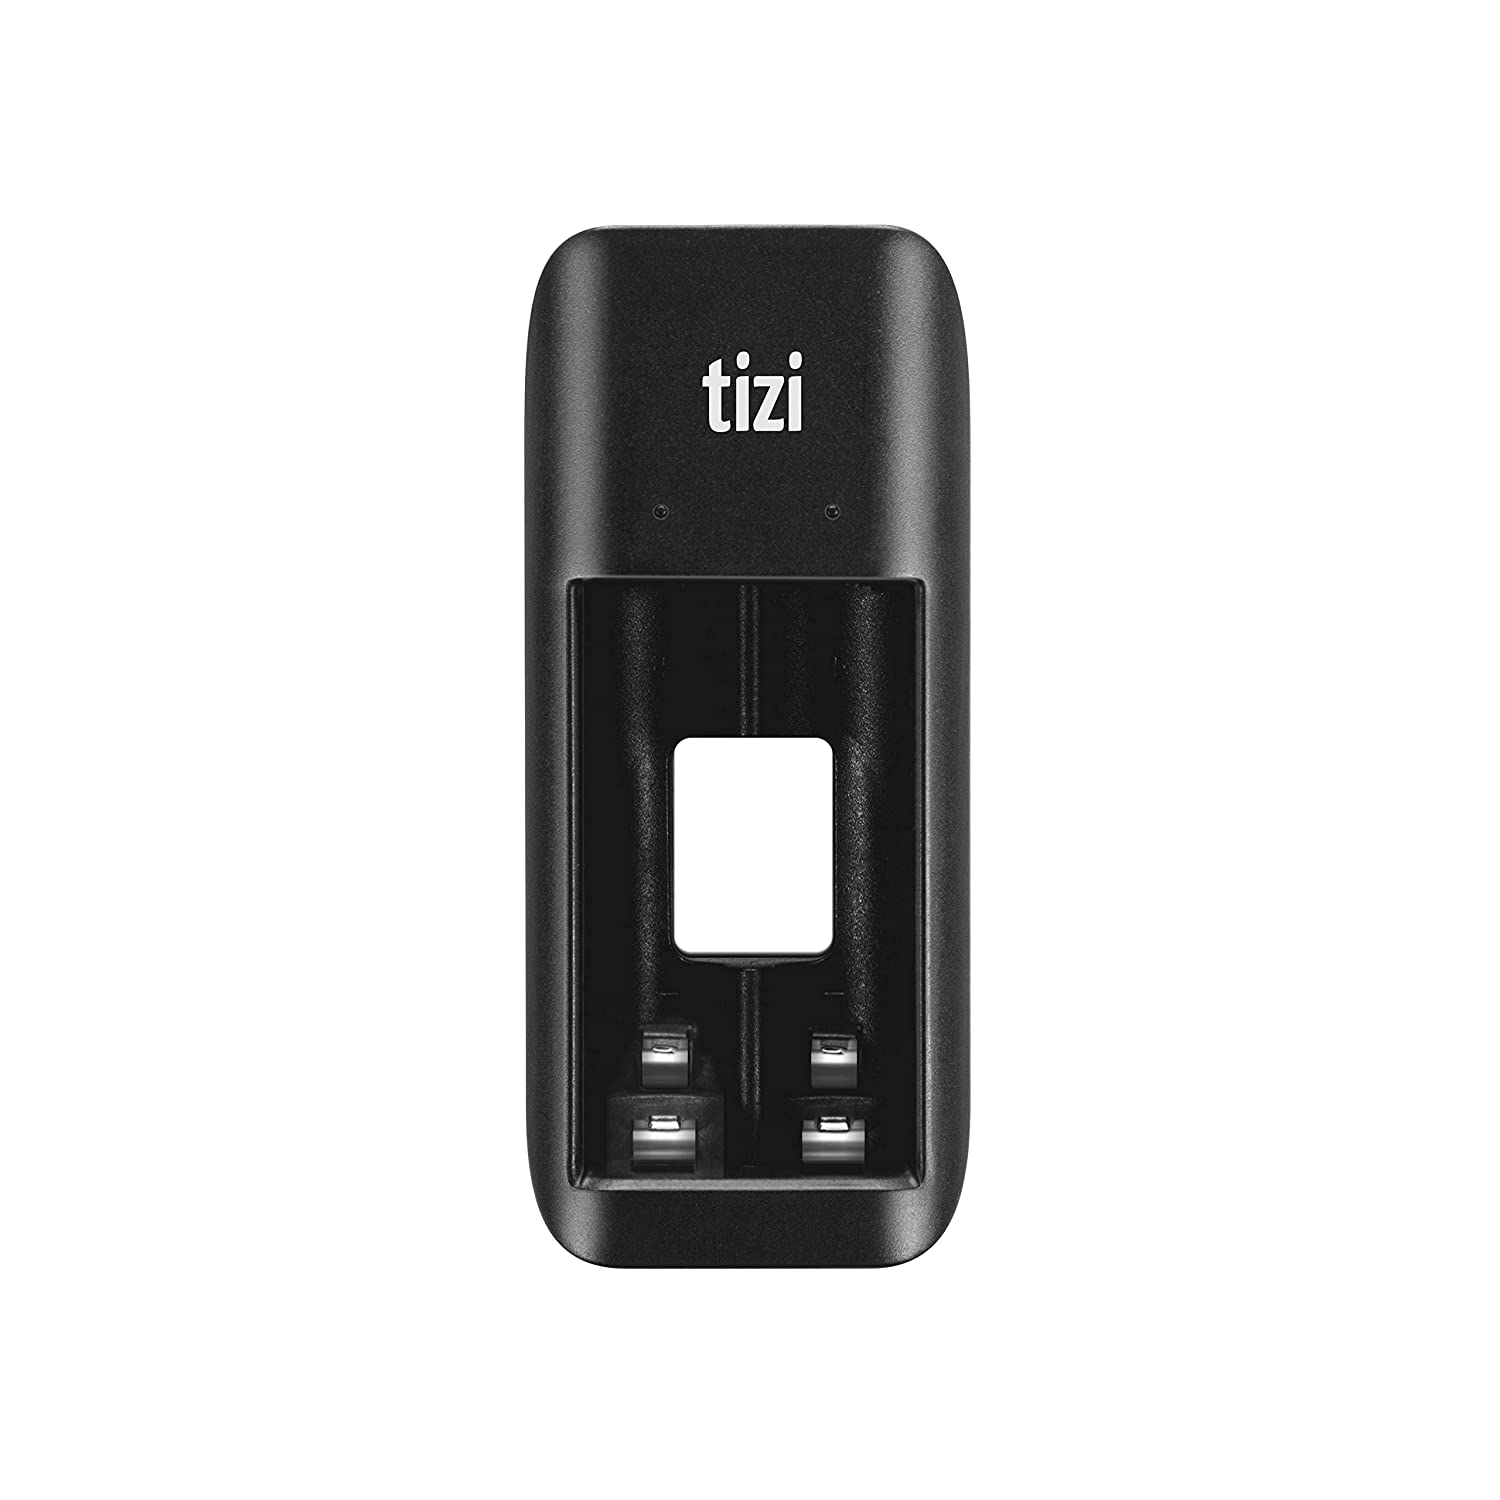 equinux New Tizi LAADAAA - USB Battery Charger for 2X AA Mignon/AAA Micro (Ni-Mh, Ni-CD, Rechargeable Batteries) Charge Via Micro USB, Light and Portable: ...